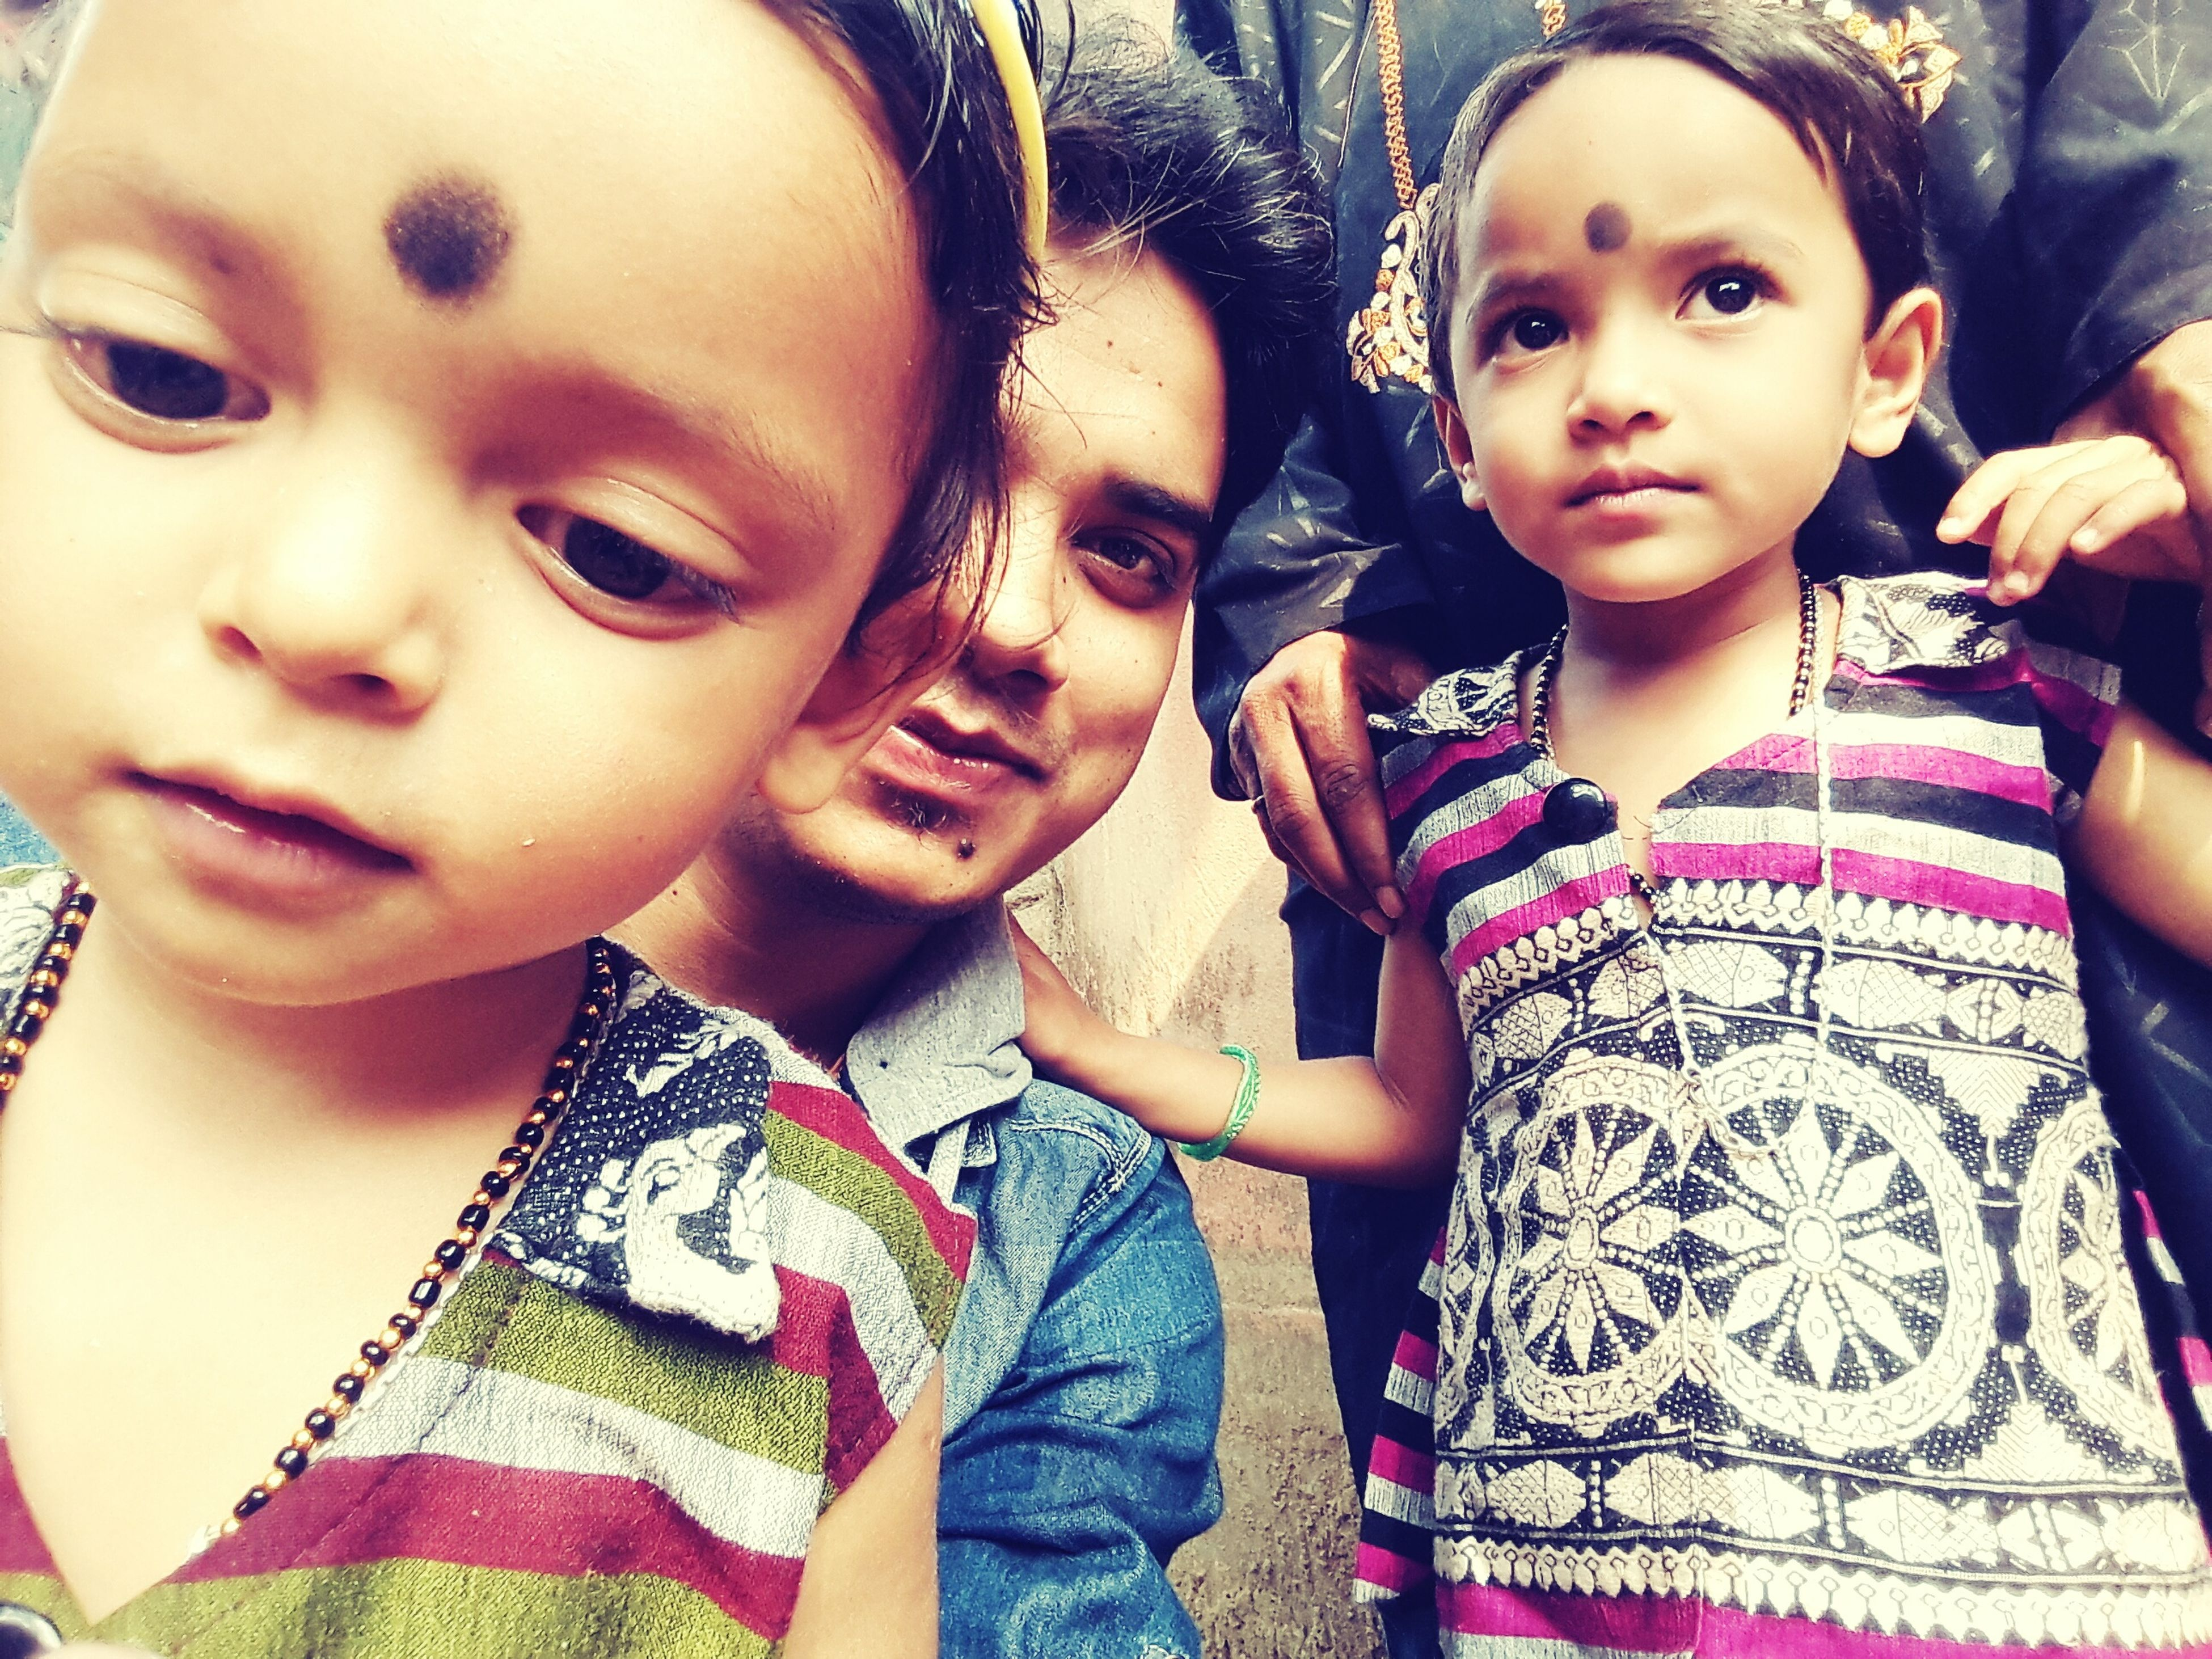 childhood, togetherness, bonding, person, cute, innocence, elementary age, love, boys, family, girls, lifestyles, portrait, leisure activity, looking at camera, happiness, smiling, sibling